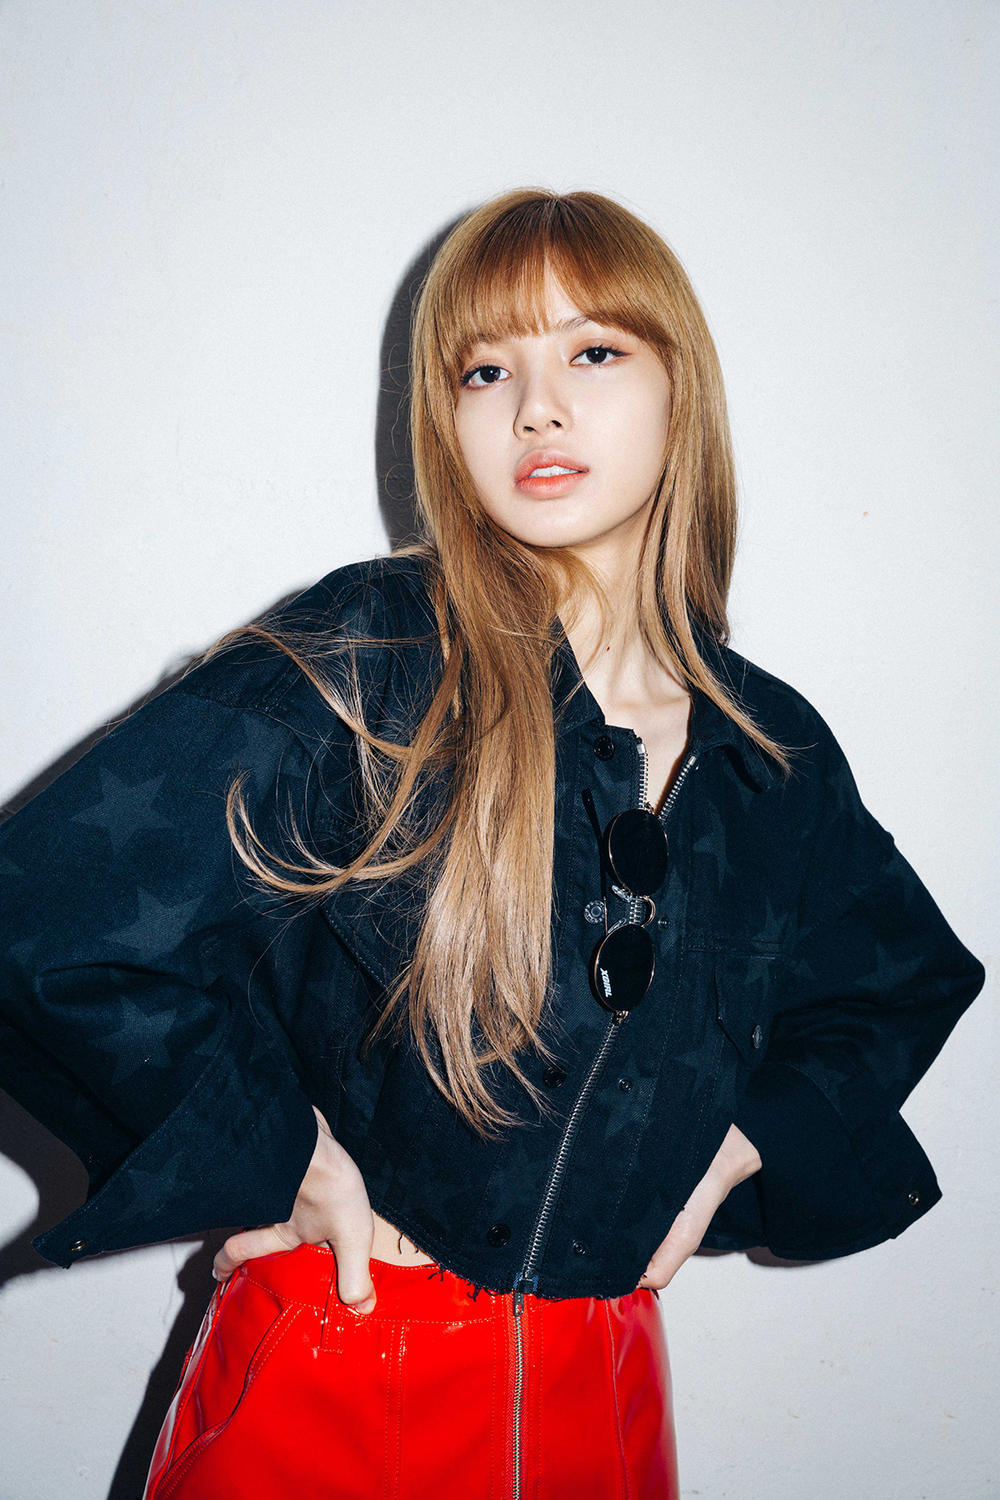 X-Girl Nonagon Blackpink Lisa Campaign Collaboration K-Pop Denim Jacket Red Vinyl Skirt